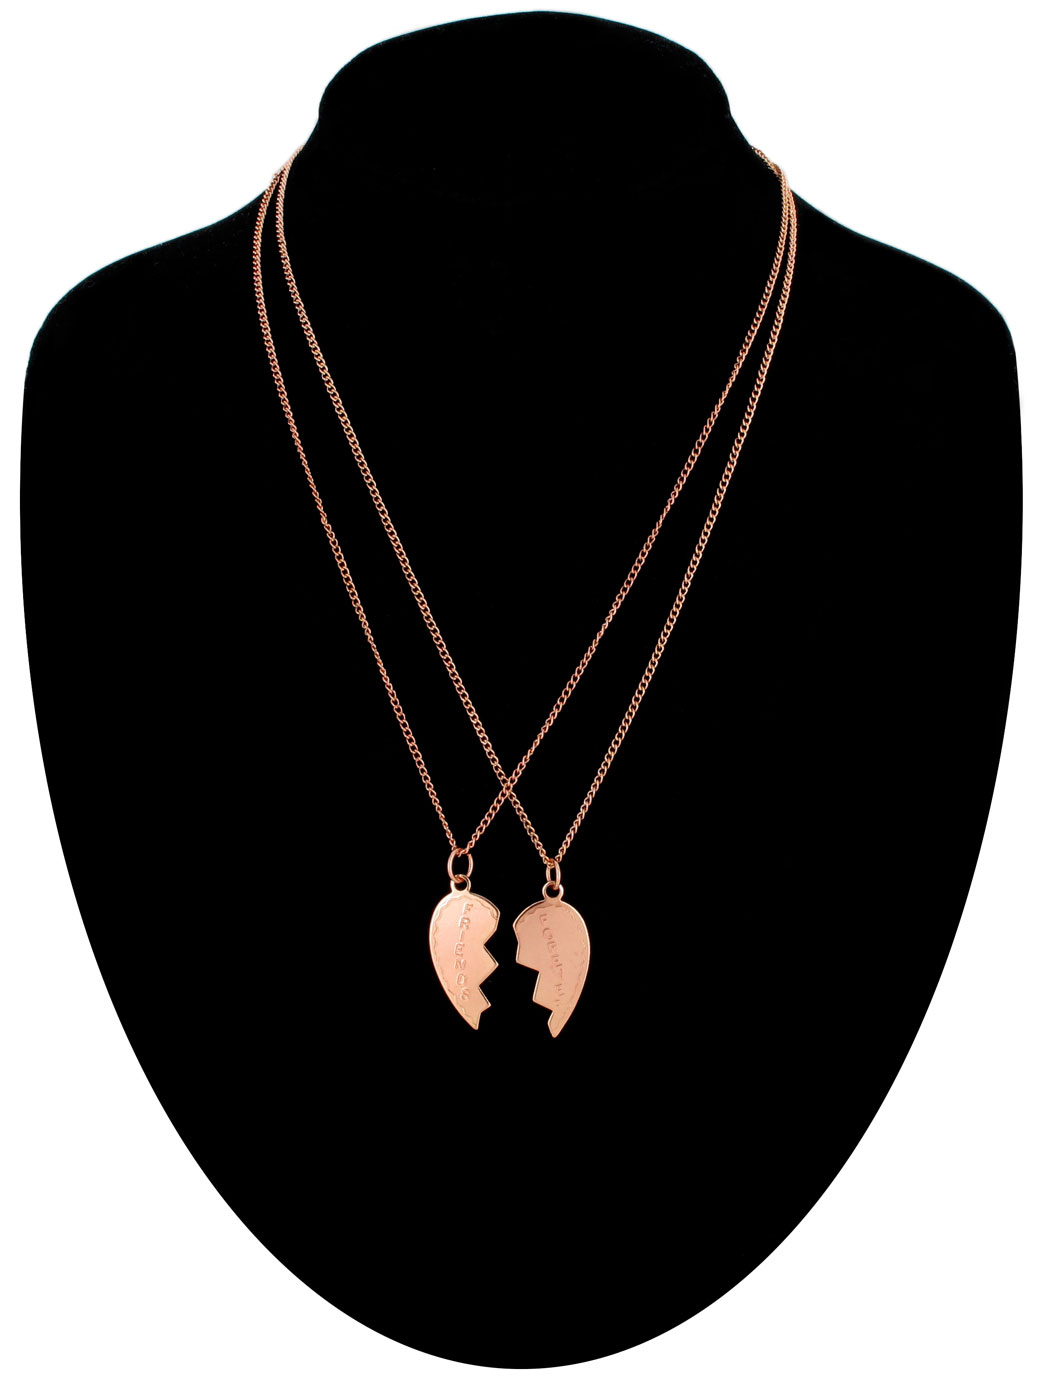 Ky & Co Necklace Bff Set Friends Forever Rose Gold Tone Broken Heart